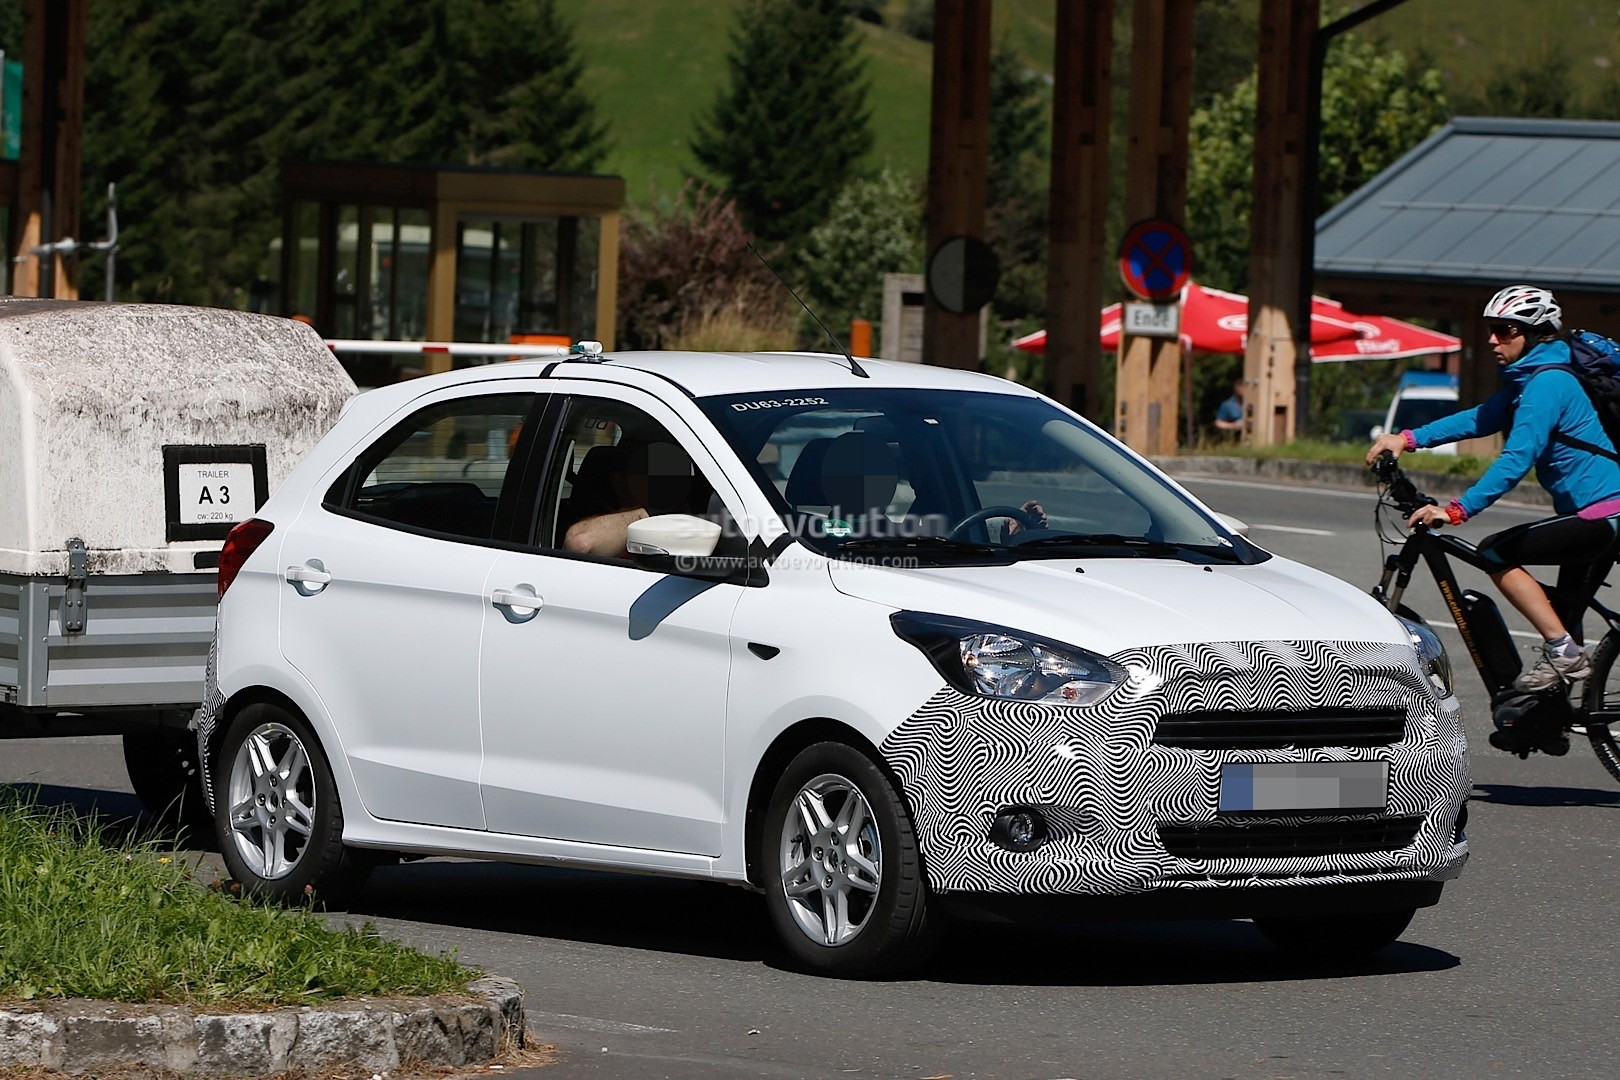 2016 ford ka spotted testing in the alps ford is preparing the hatch for europe autoevolution. Black Bedroom Furniture Sets. Home Design Ideas